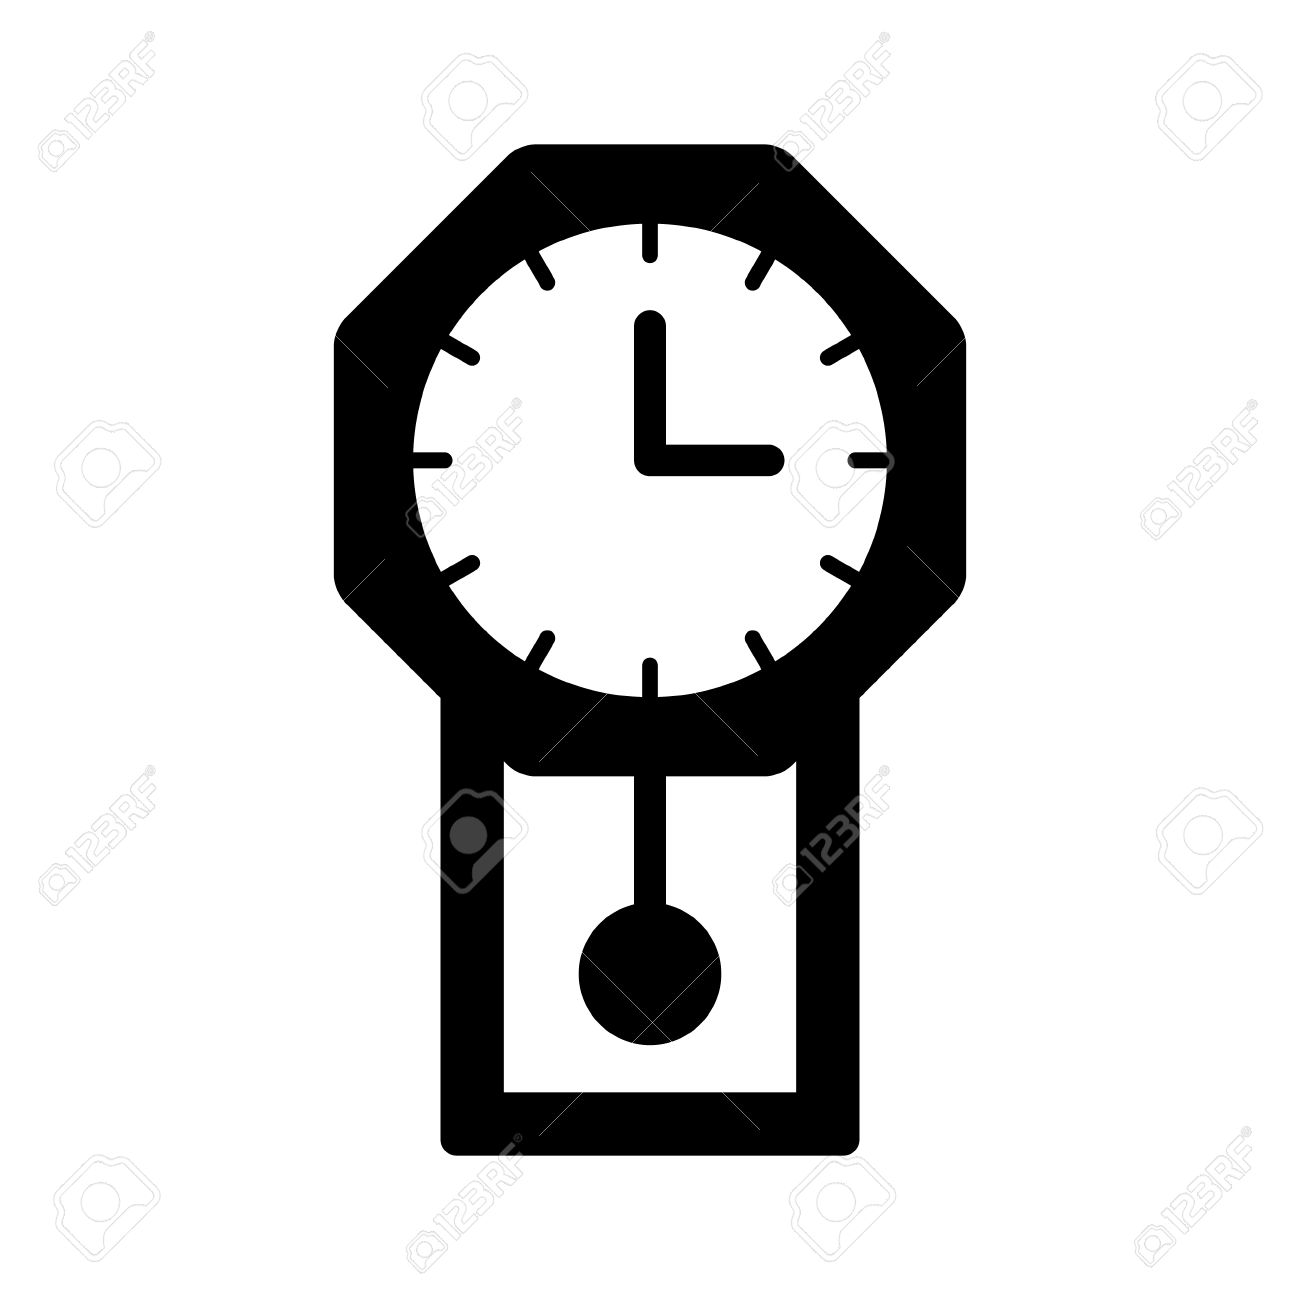 Vintage Pendulum Wall Clock Flat Icon For Apps And Websites.